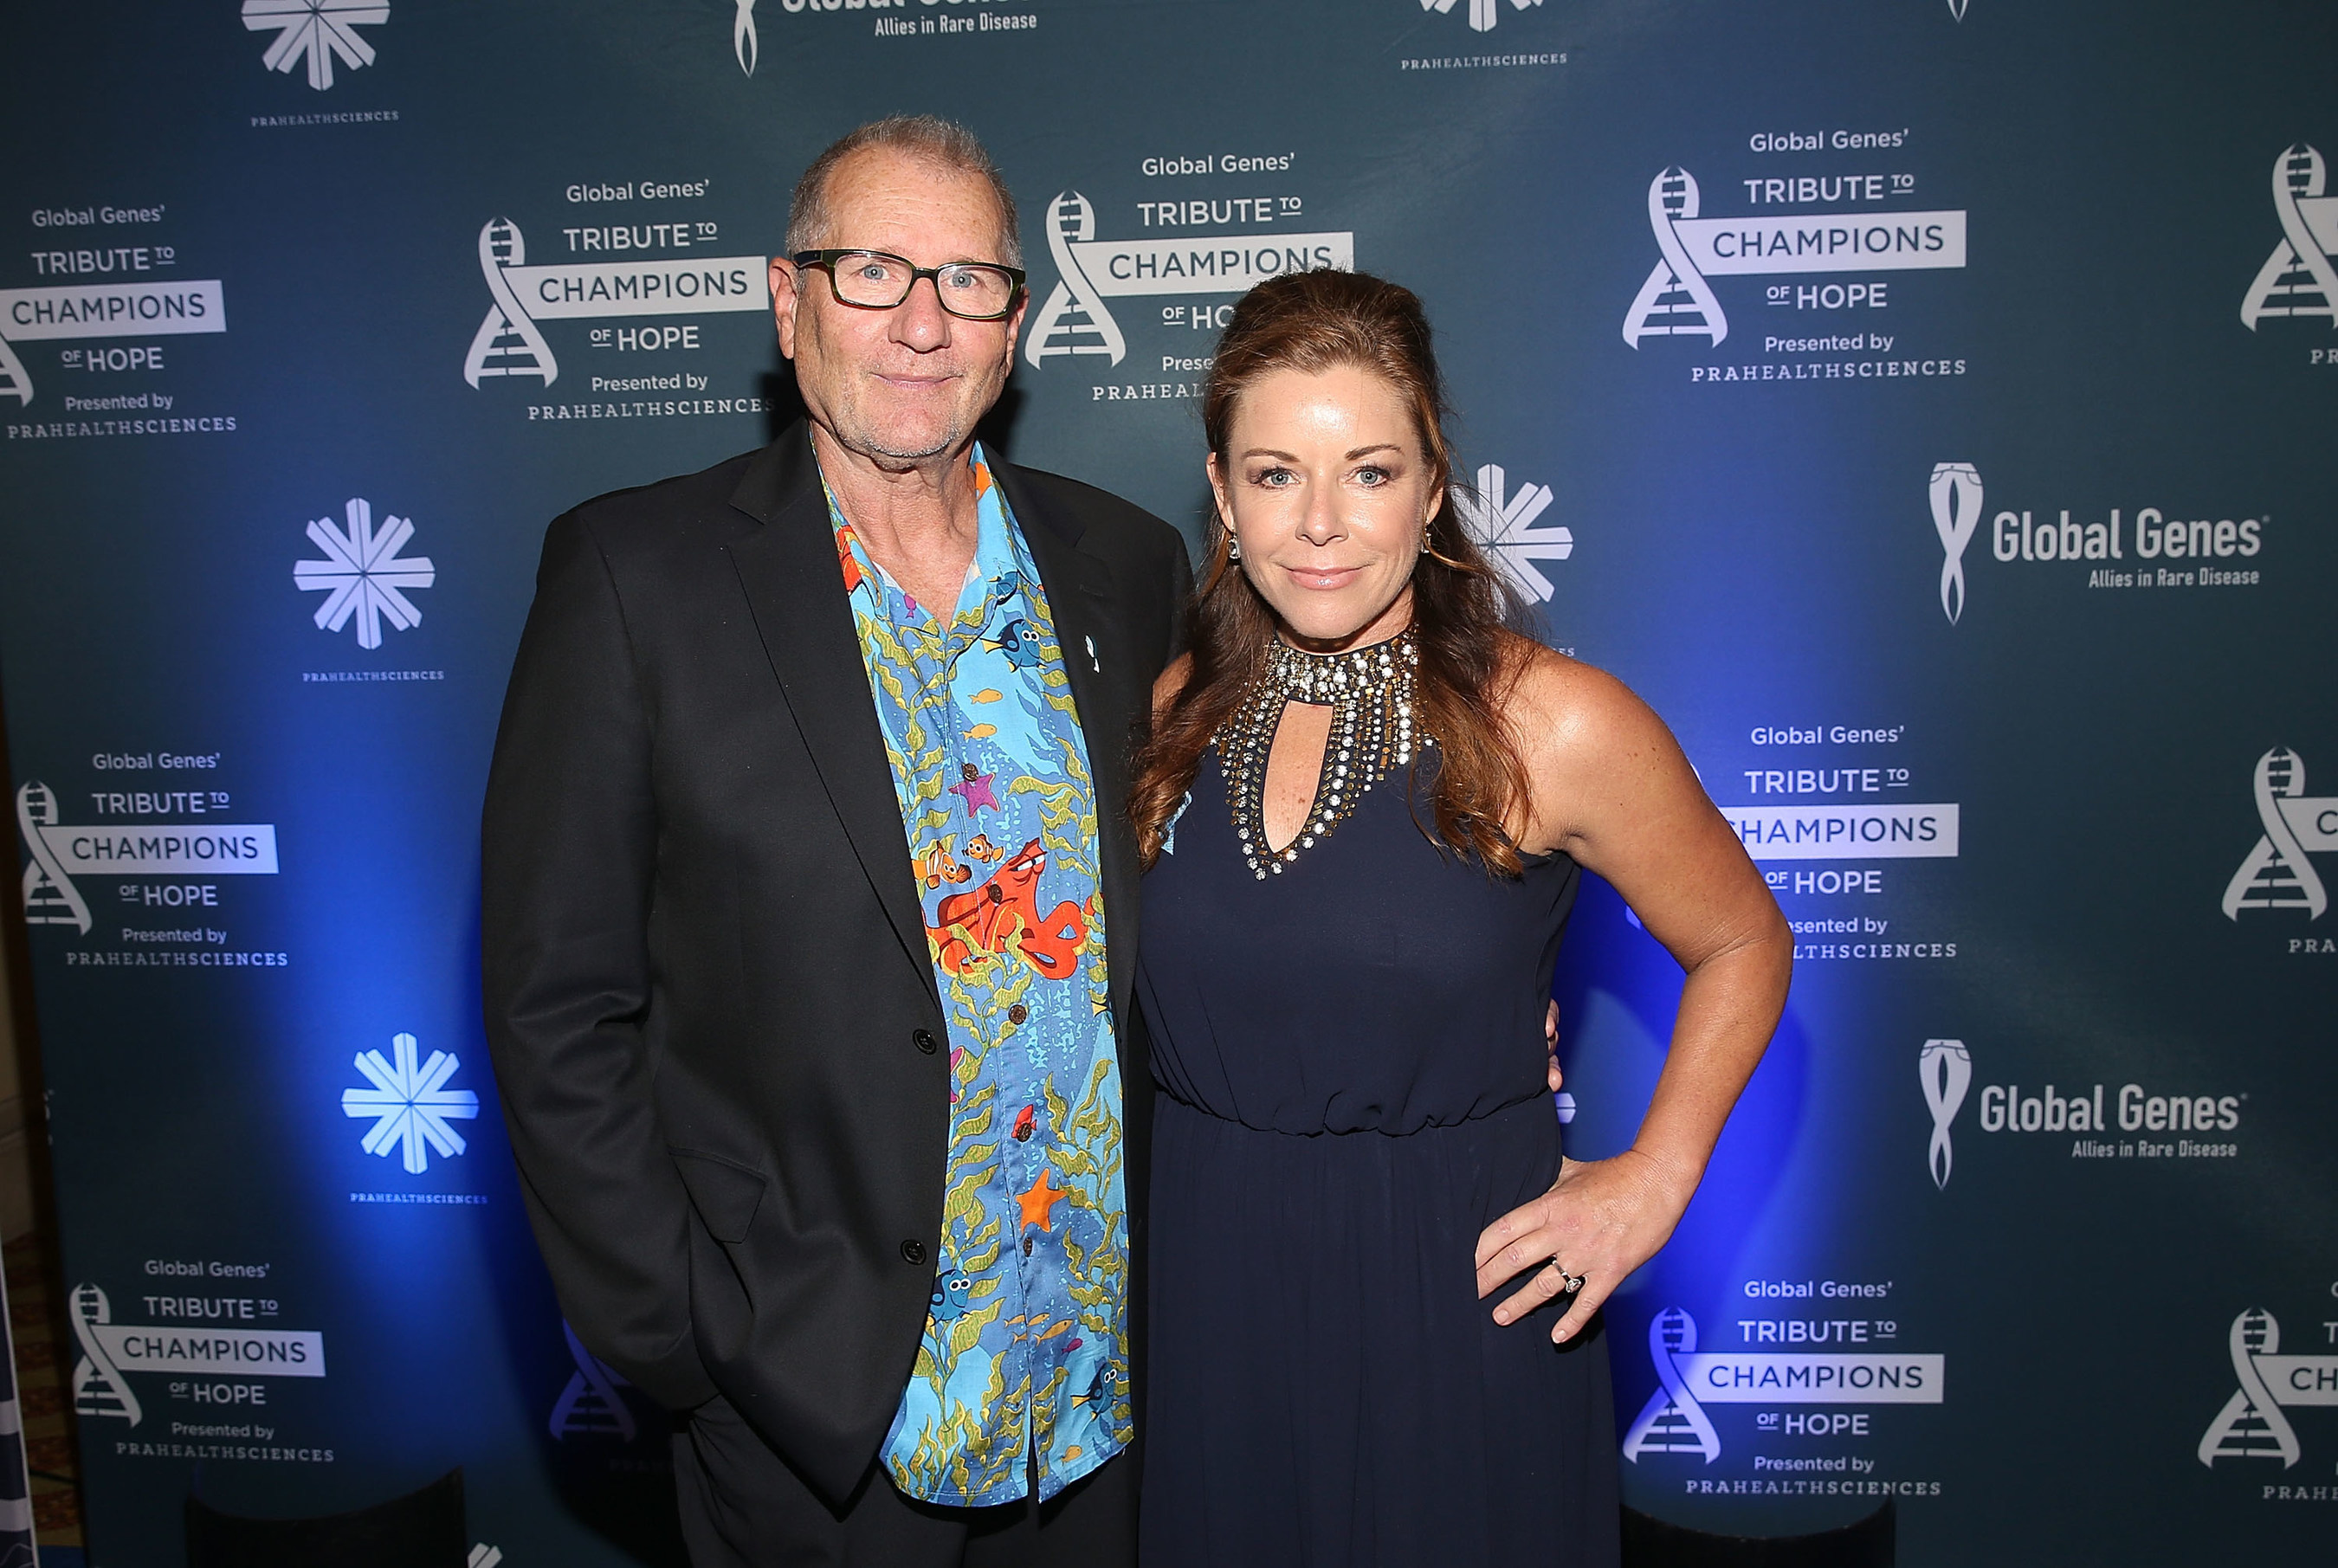 Global Genes 5th Annual RARE Tribute to Champions of Hope and Patient Advocacy Summit Raises over $1.4 Million for Rare Disease Education, Awareness, and Grant Programs